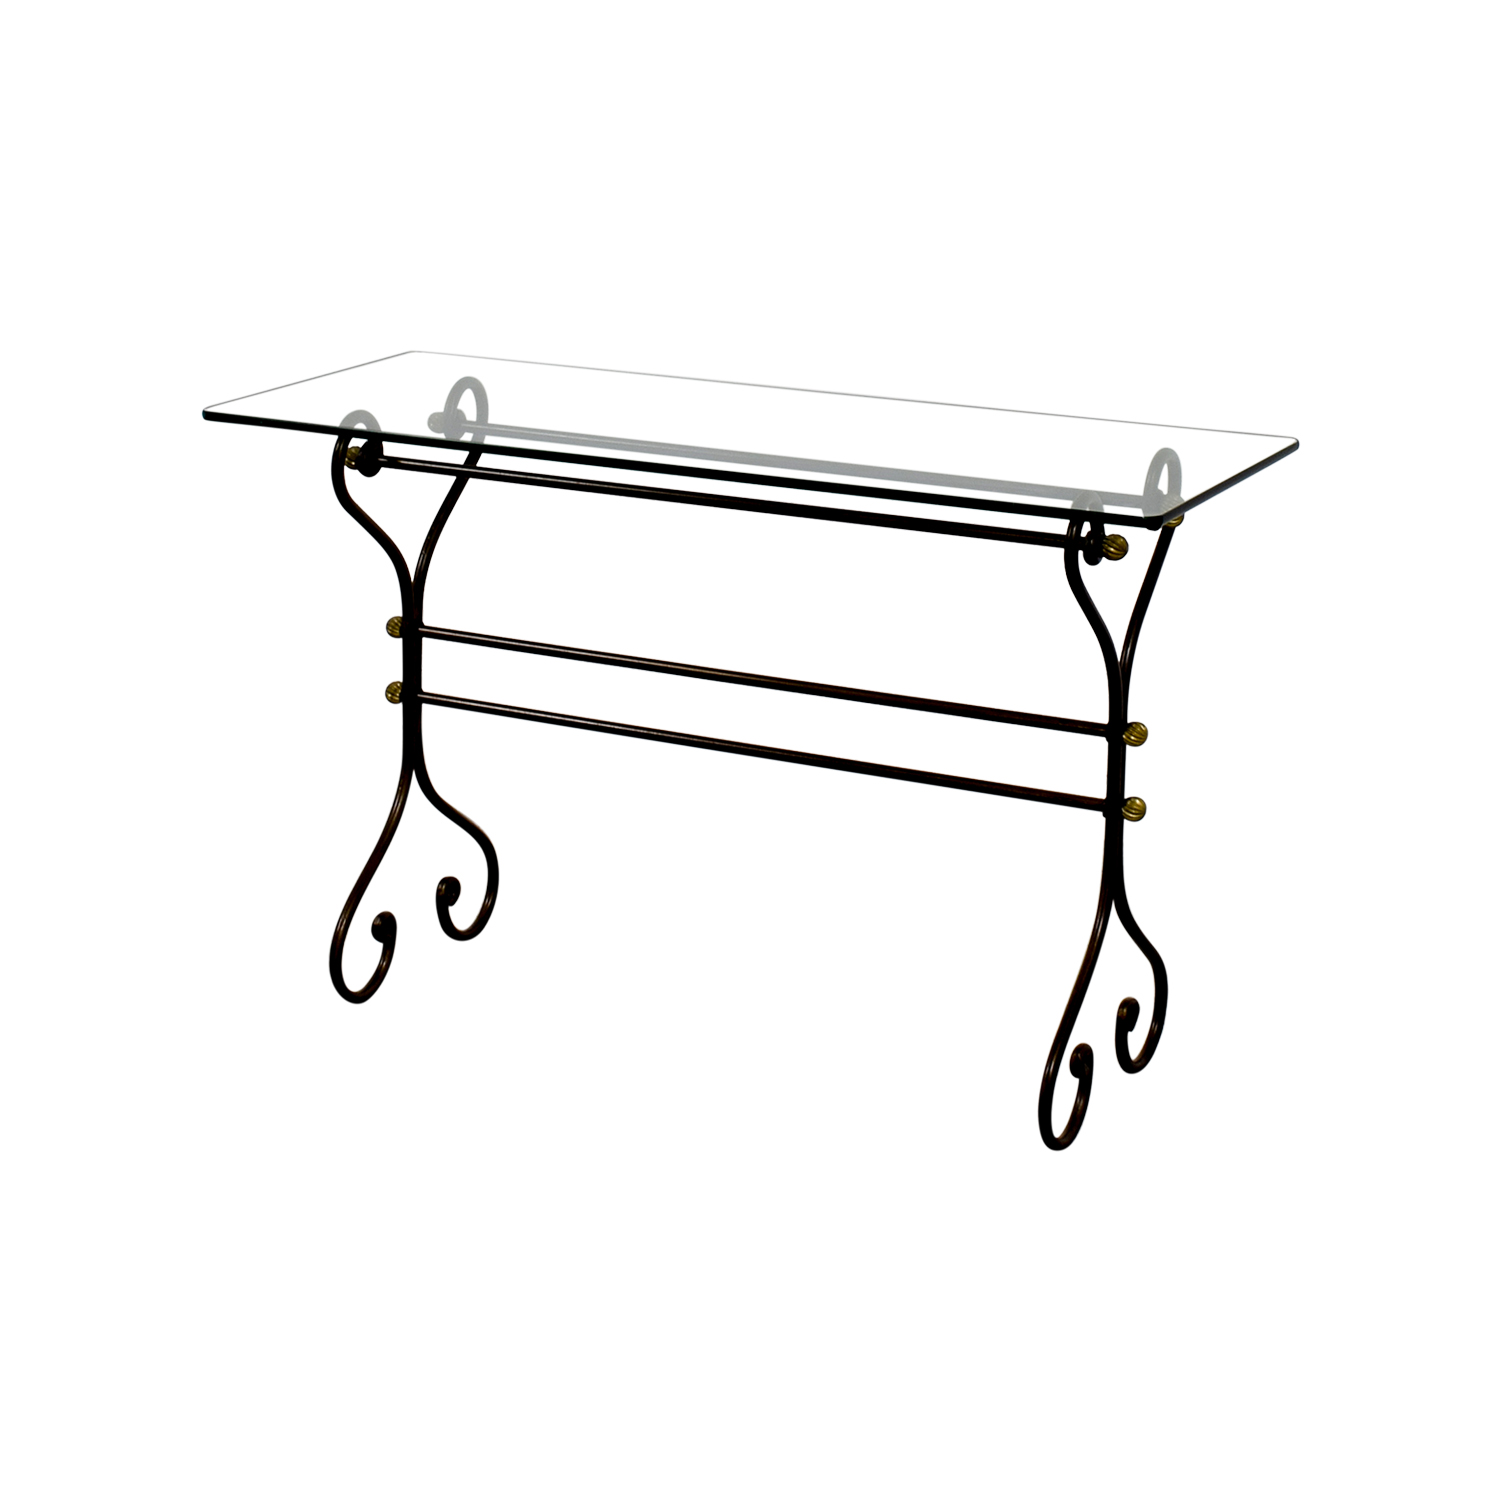 61 off glass and iron sofa table tables shop glass and iron sofa table utility tables geotapseo Image collections